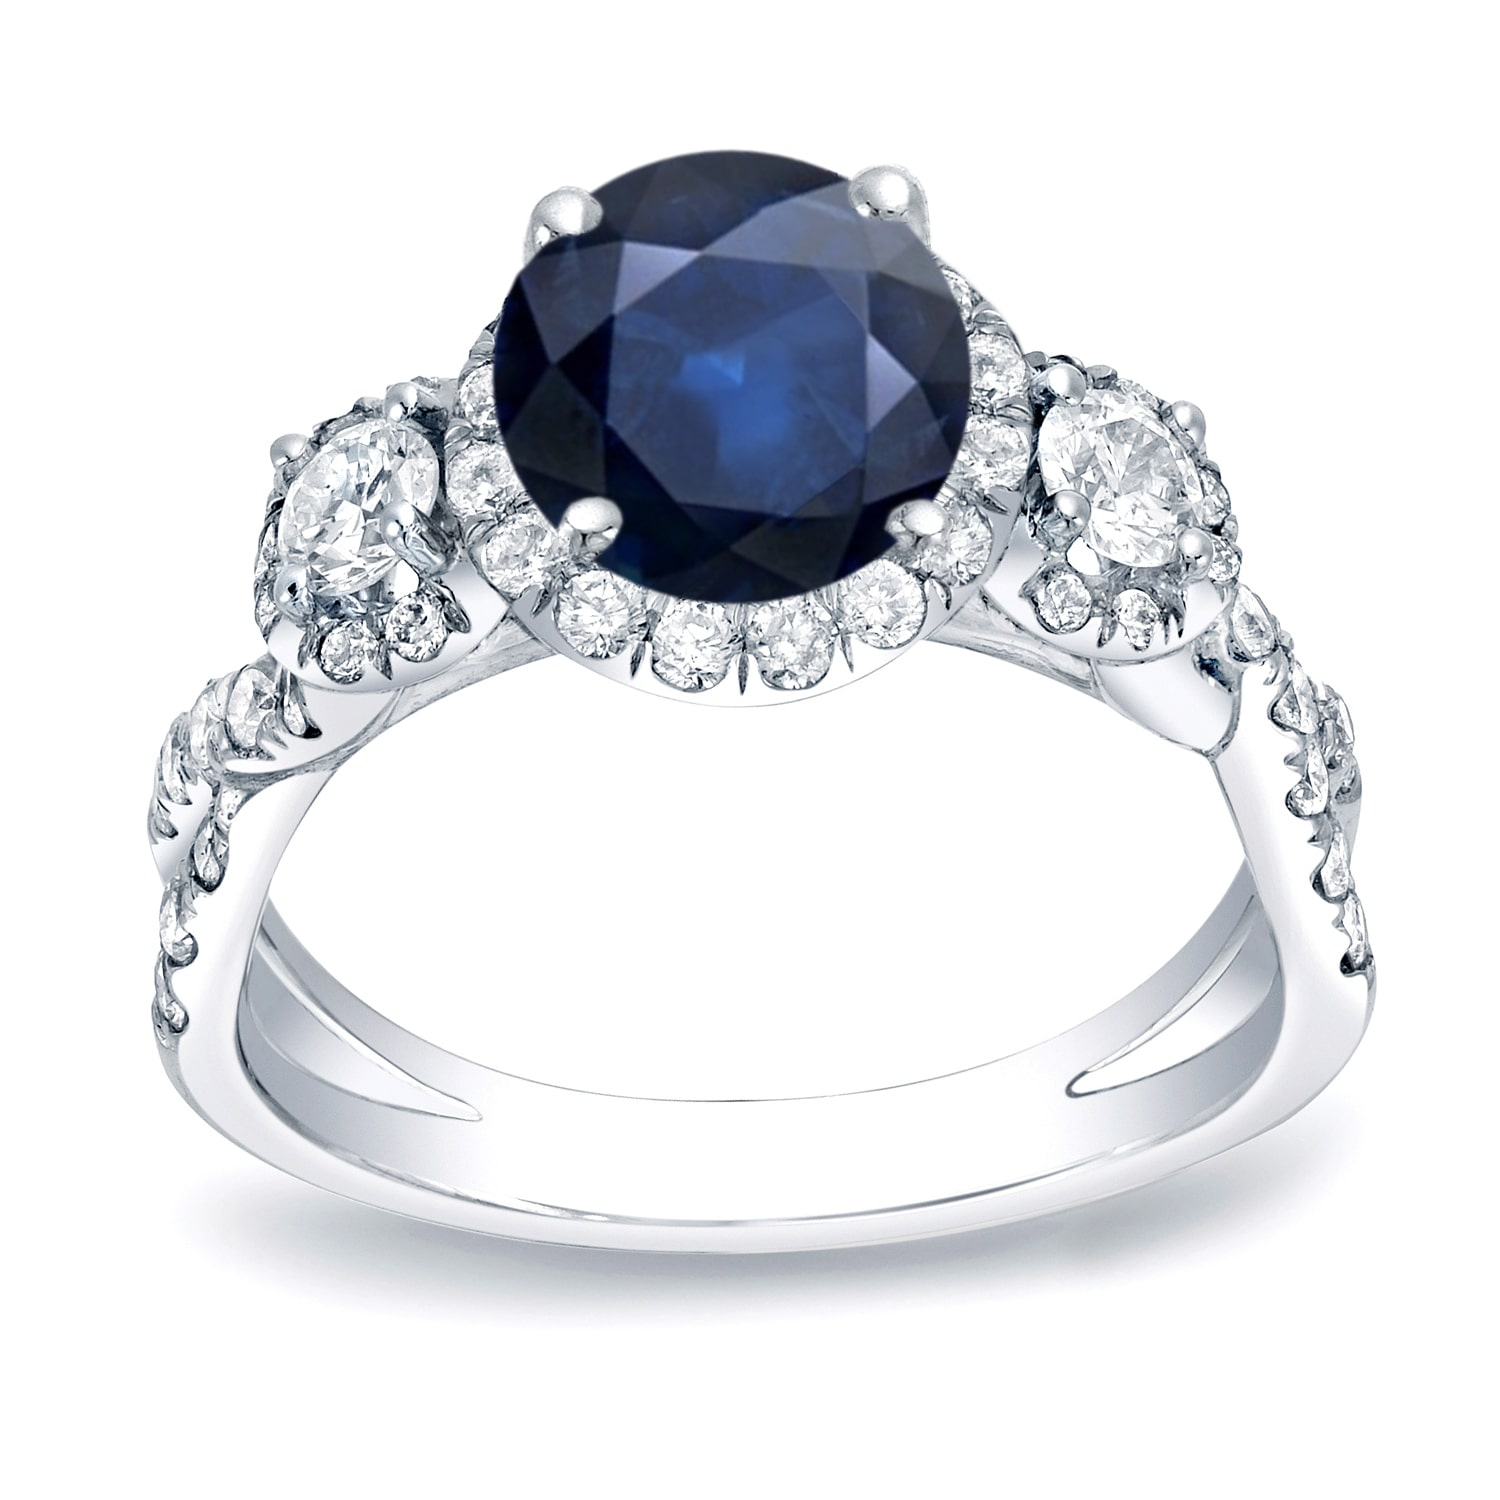 Auriya 14k Gold 1ct Blue Sapphire and 1ct TDW Round Diamond Engagement Ring (H-I, SI1-SI2) Yellow Gold - Size 5